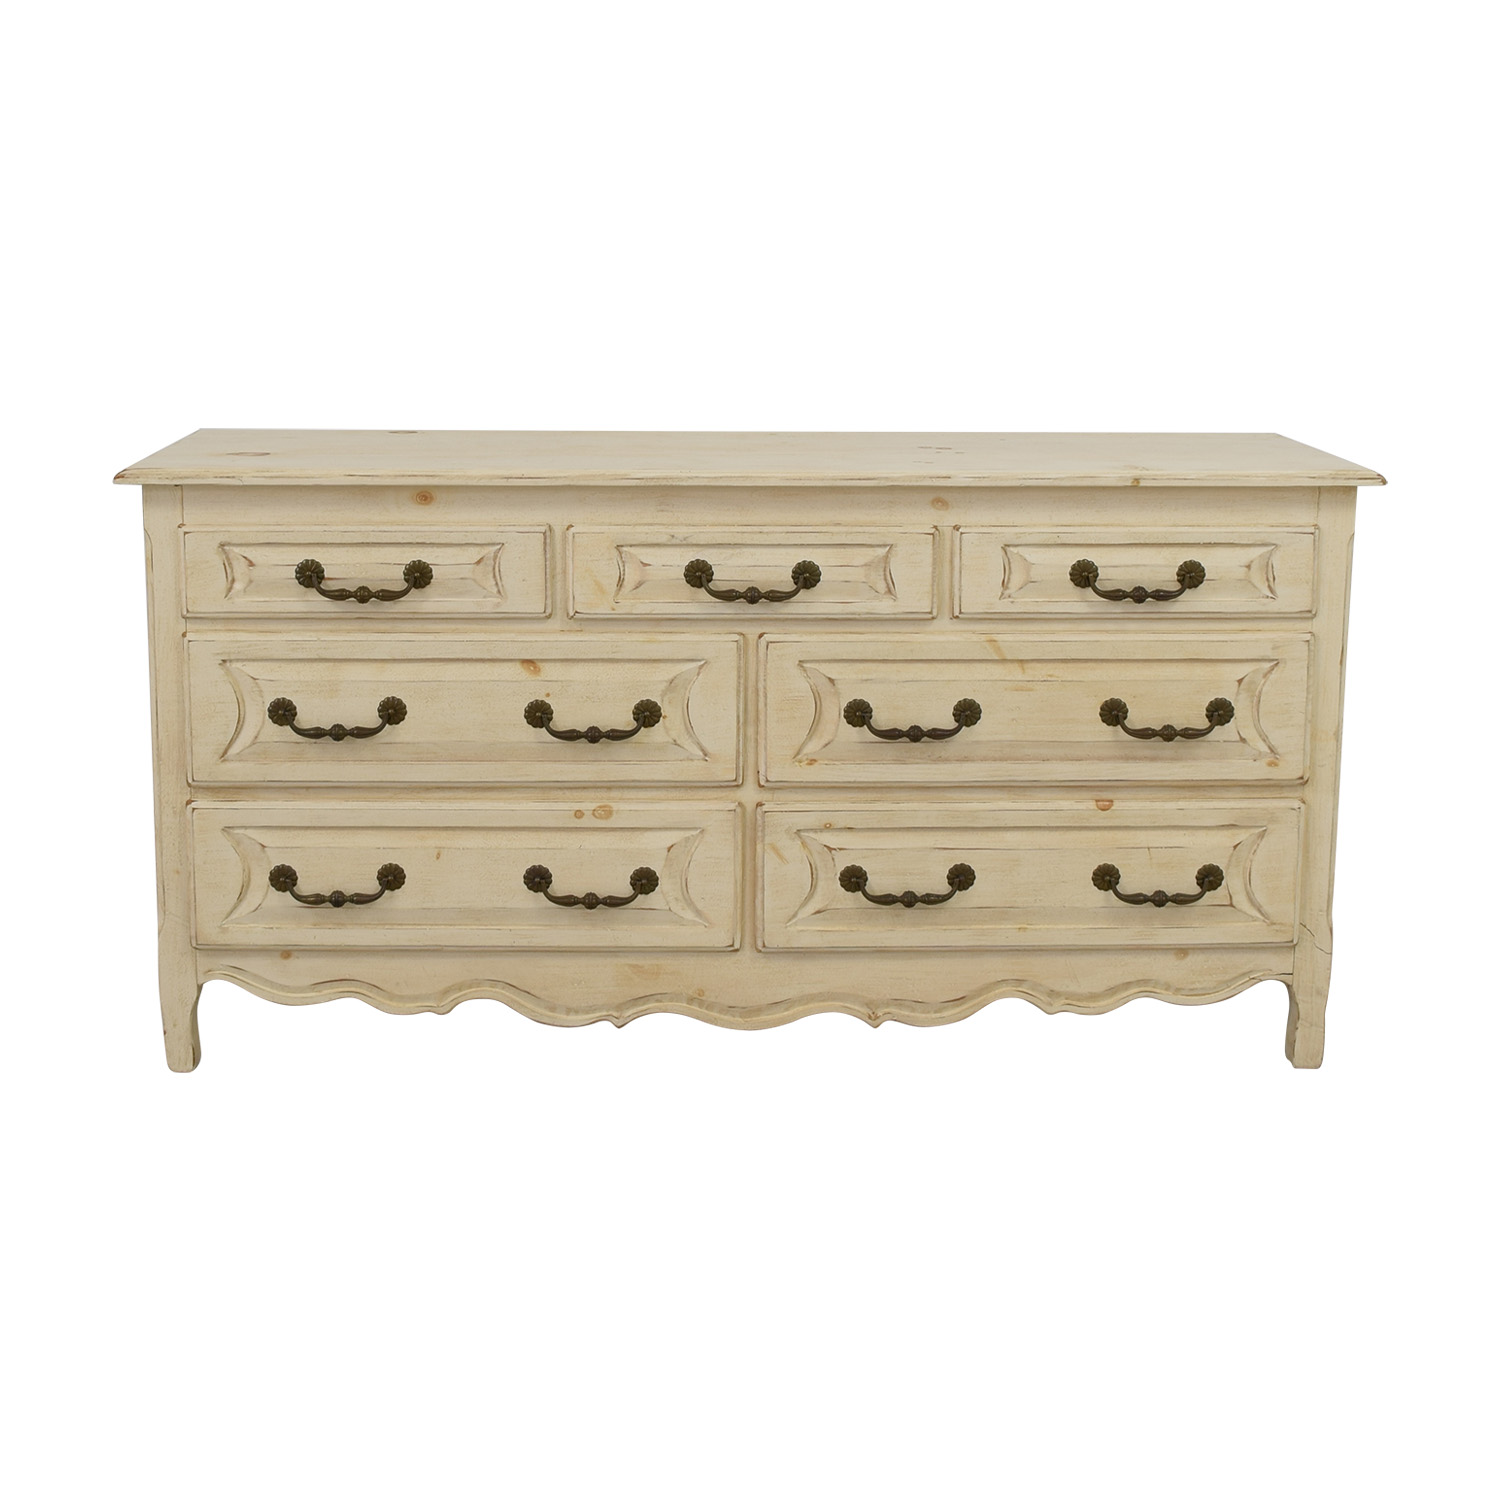 Habersham Plantation Habersham Plantation Distressed Seven-Drawer Distressed Cream Double Dresser nj